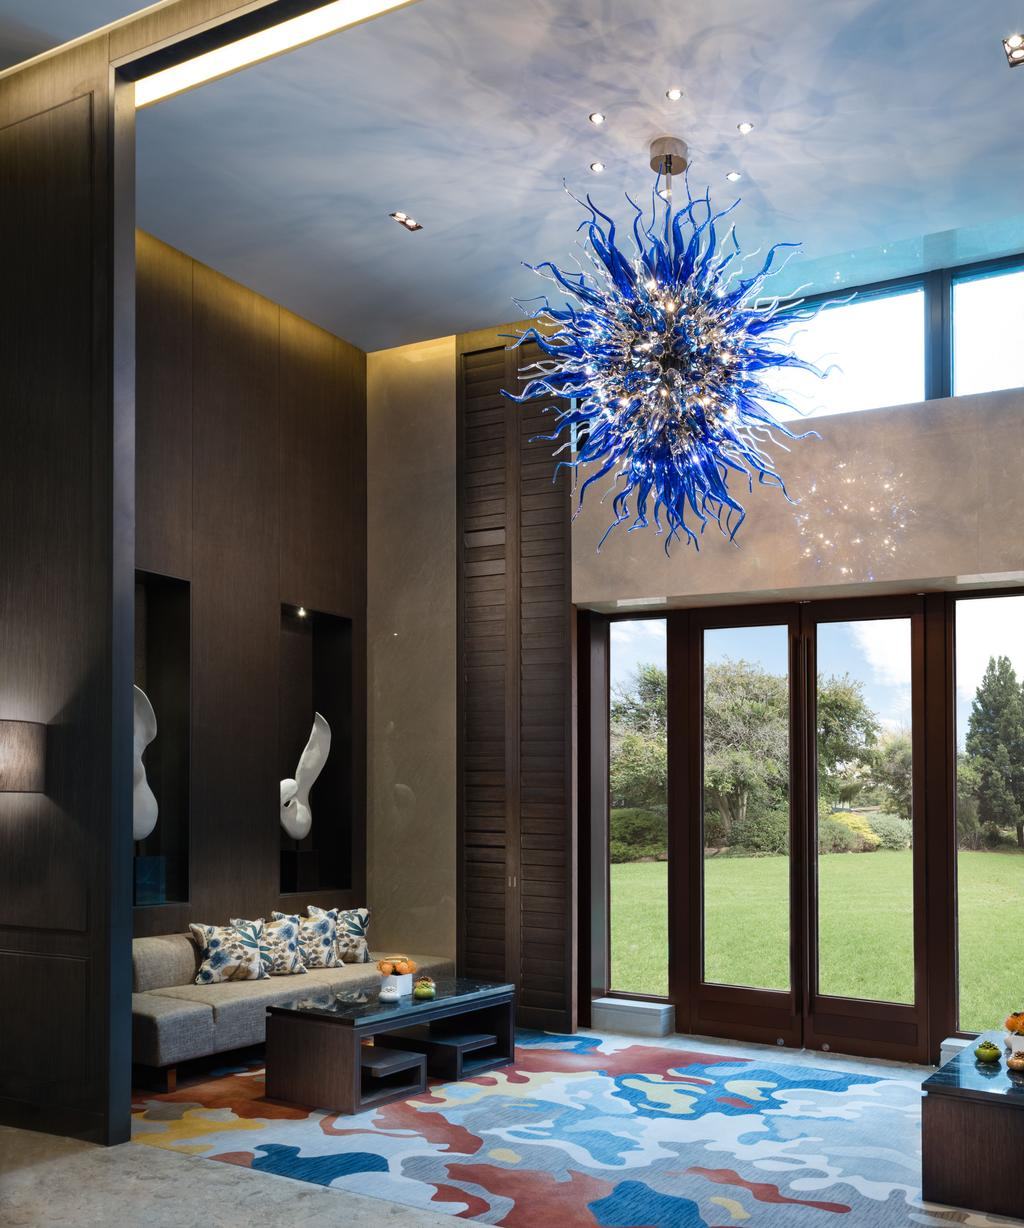 Gallery Clubhouse, Commercial, Interior Designer, A.RK Interior Design, Modern, Balcony, Light Fixture, Indoors, Interior Design